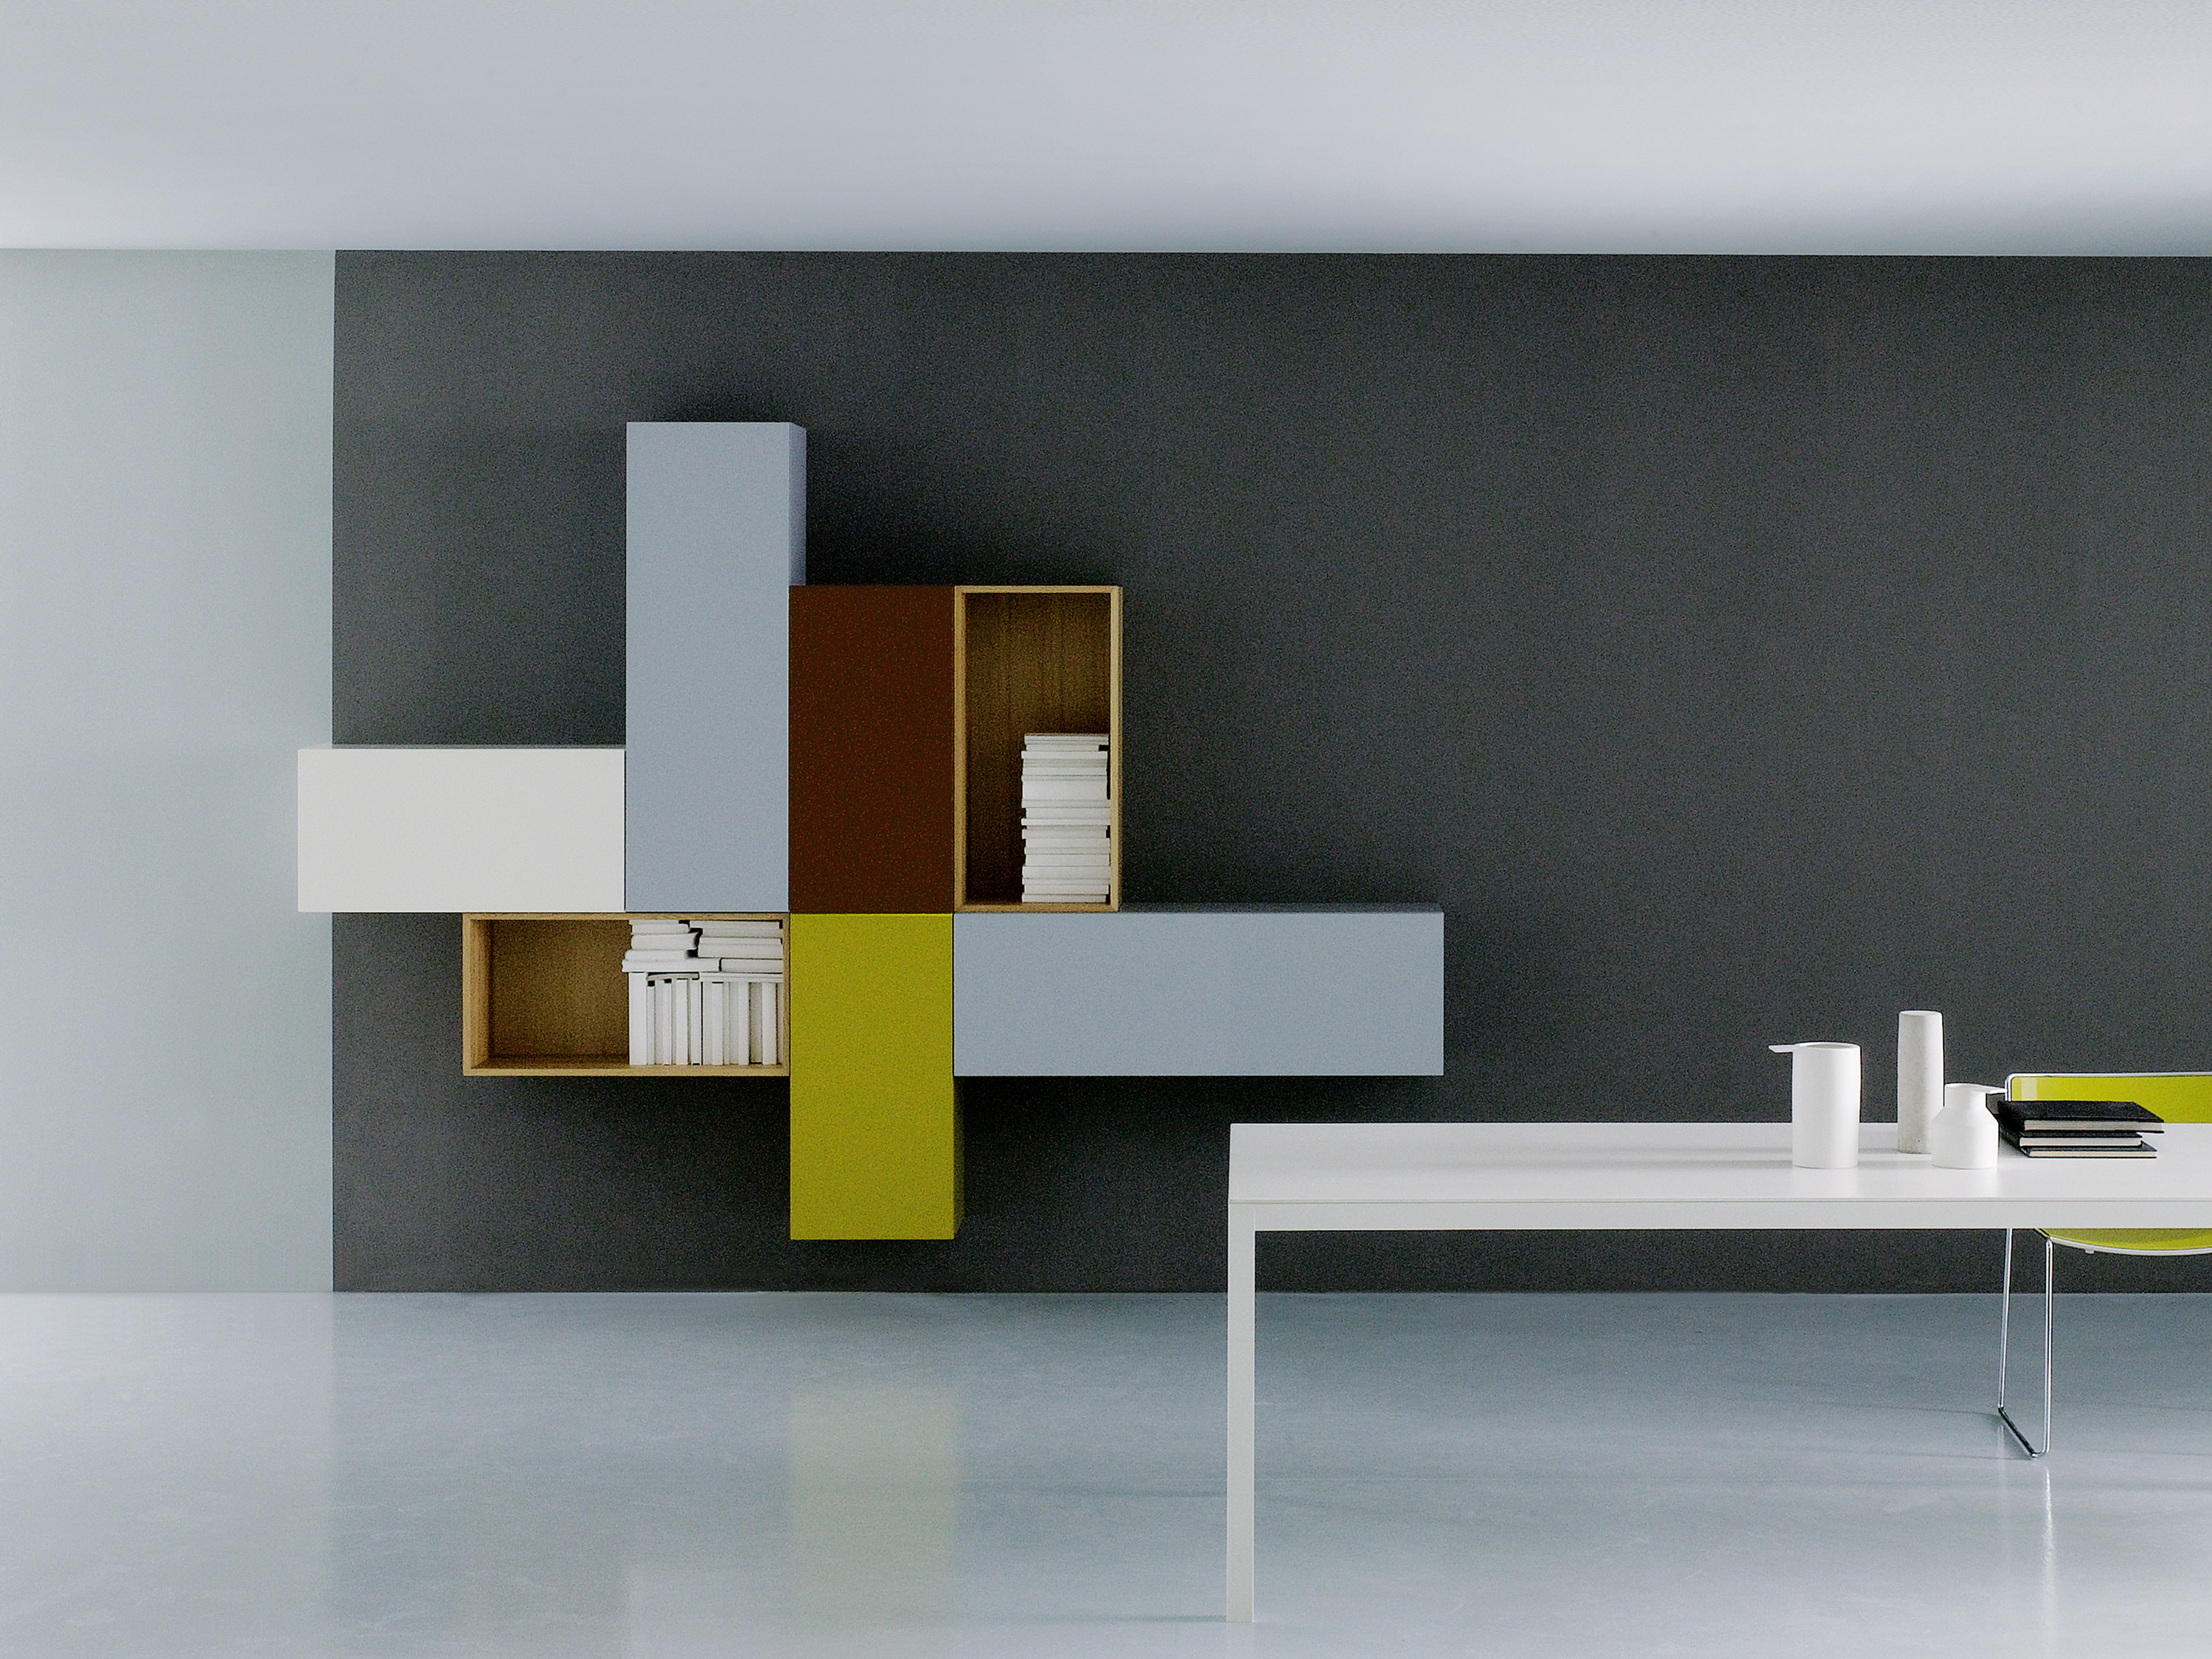 porro spa products systems dining